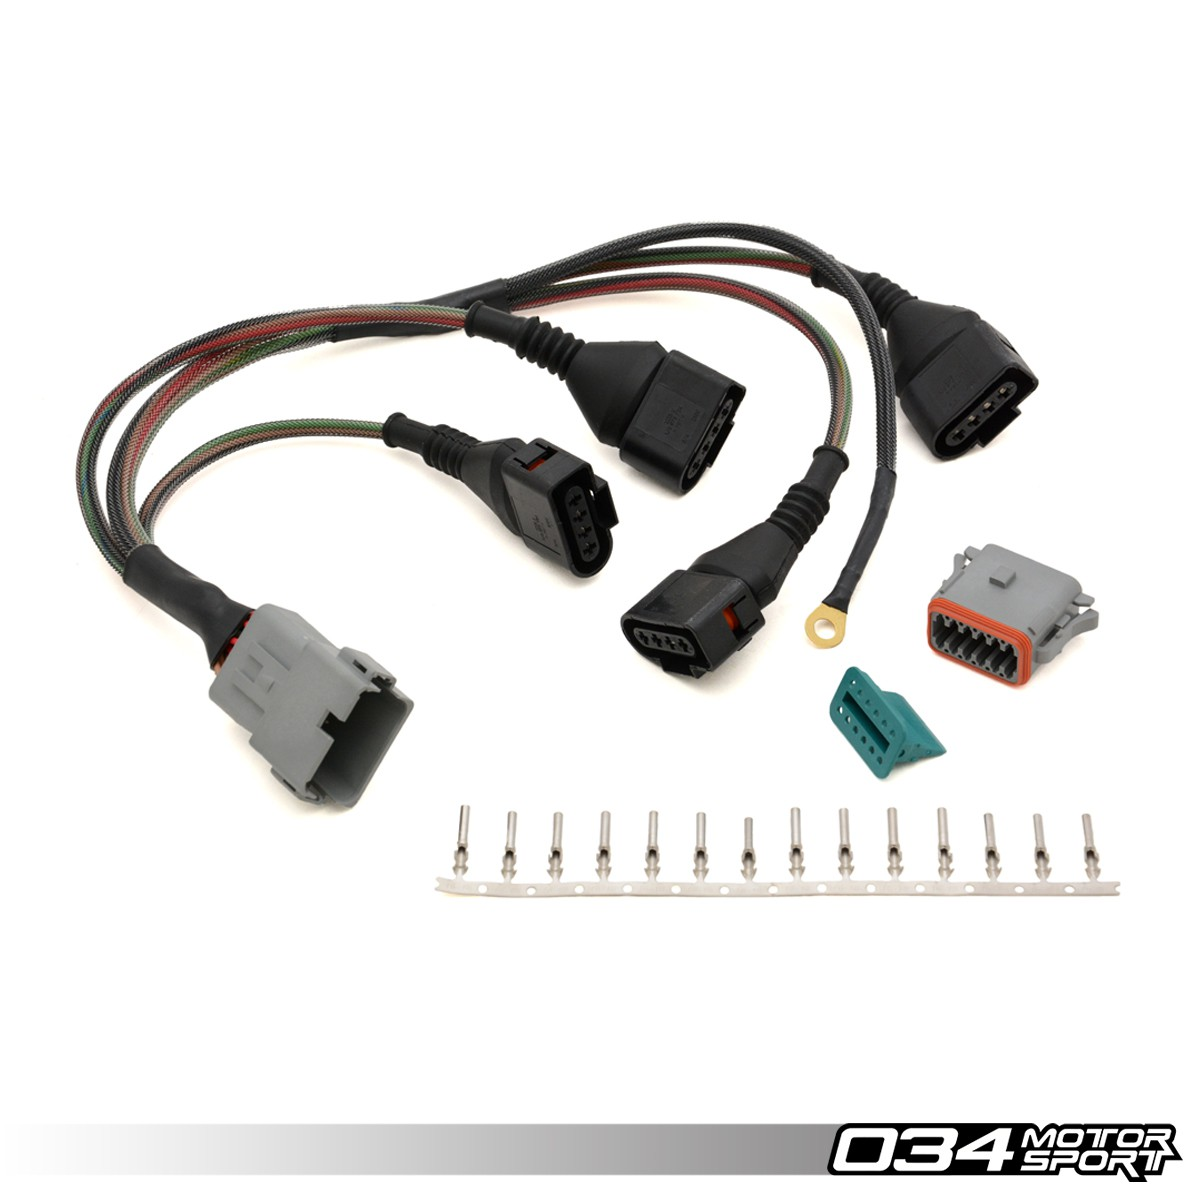 repair update harness audi volkswagen 18t with 4 wire coils 034motorsport 034 701 0004 2 repair update harness, audi volkswagen 1 8t with 4 wire coils  at fashall.co